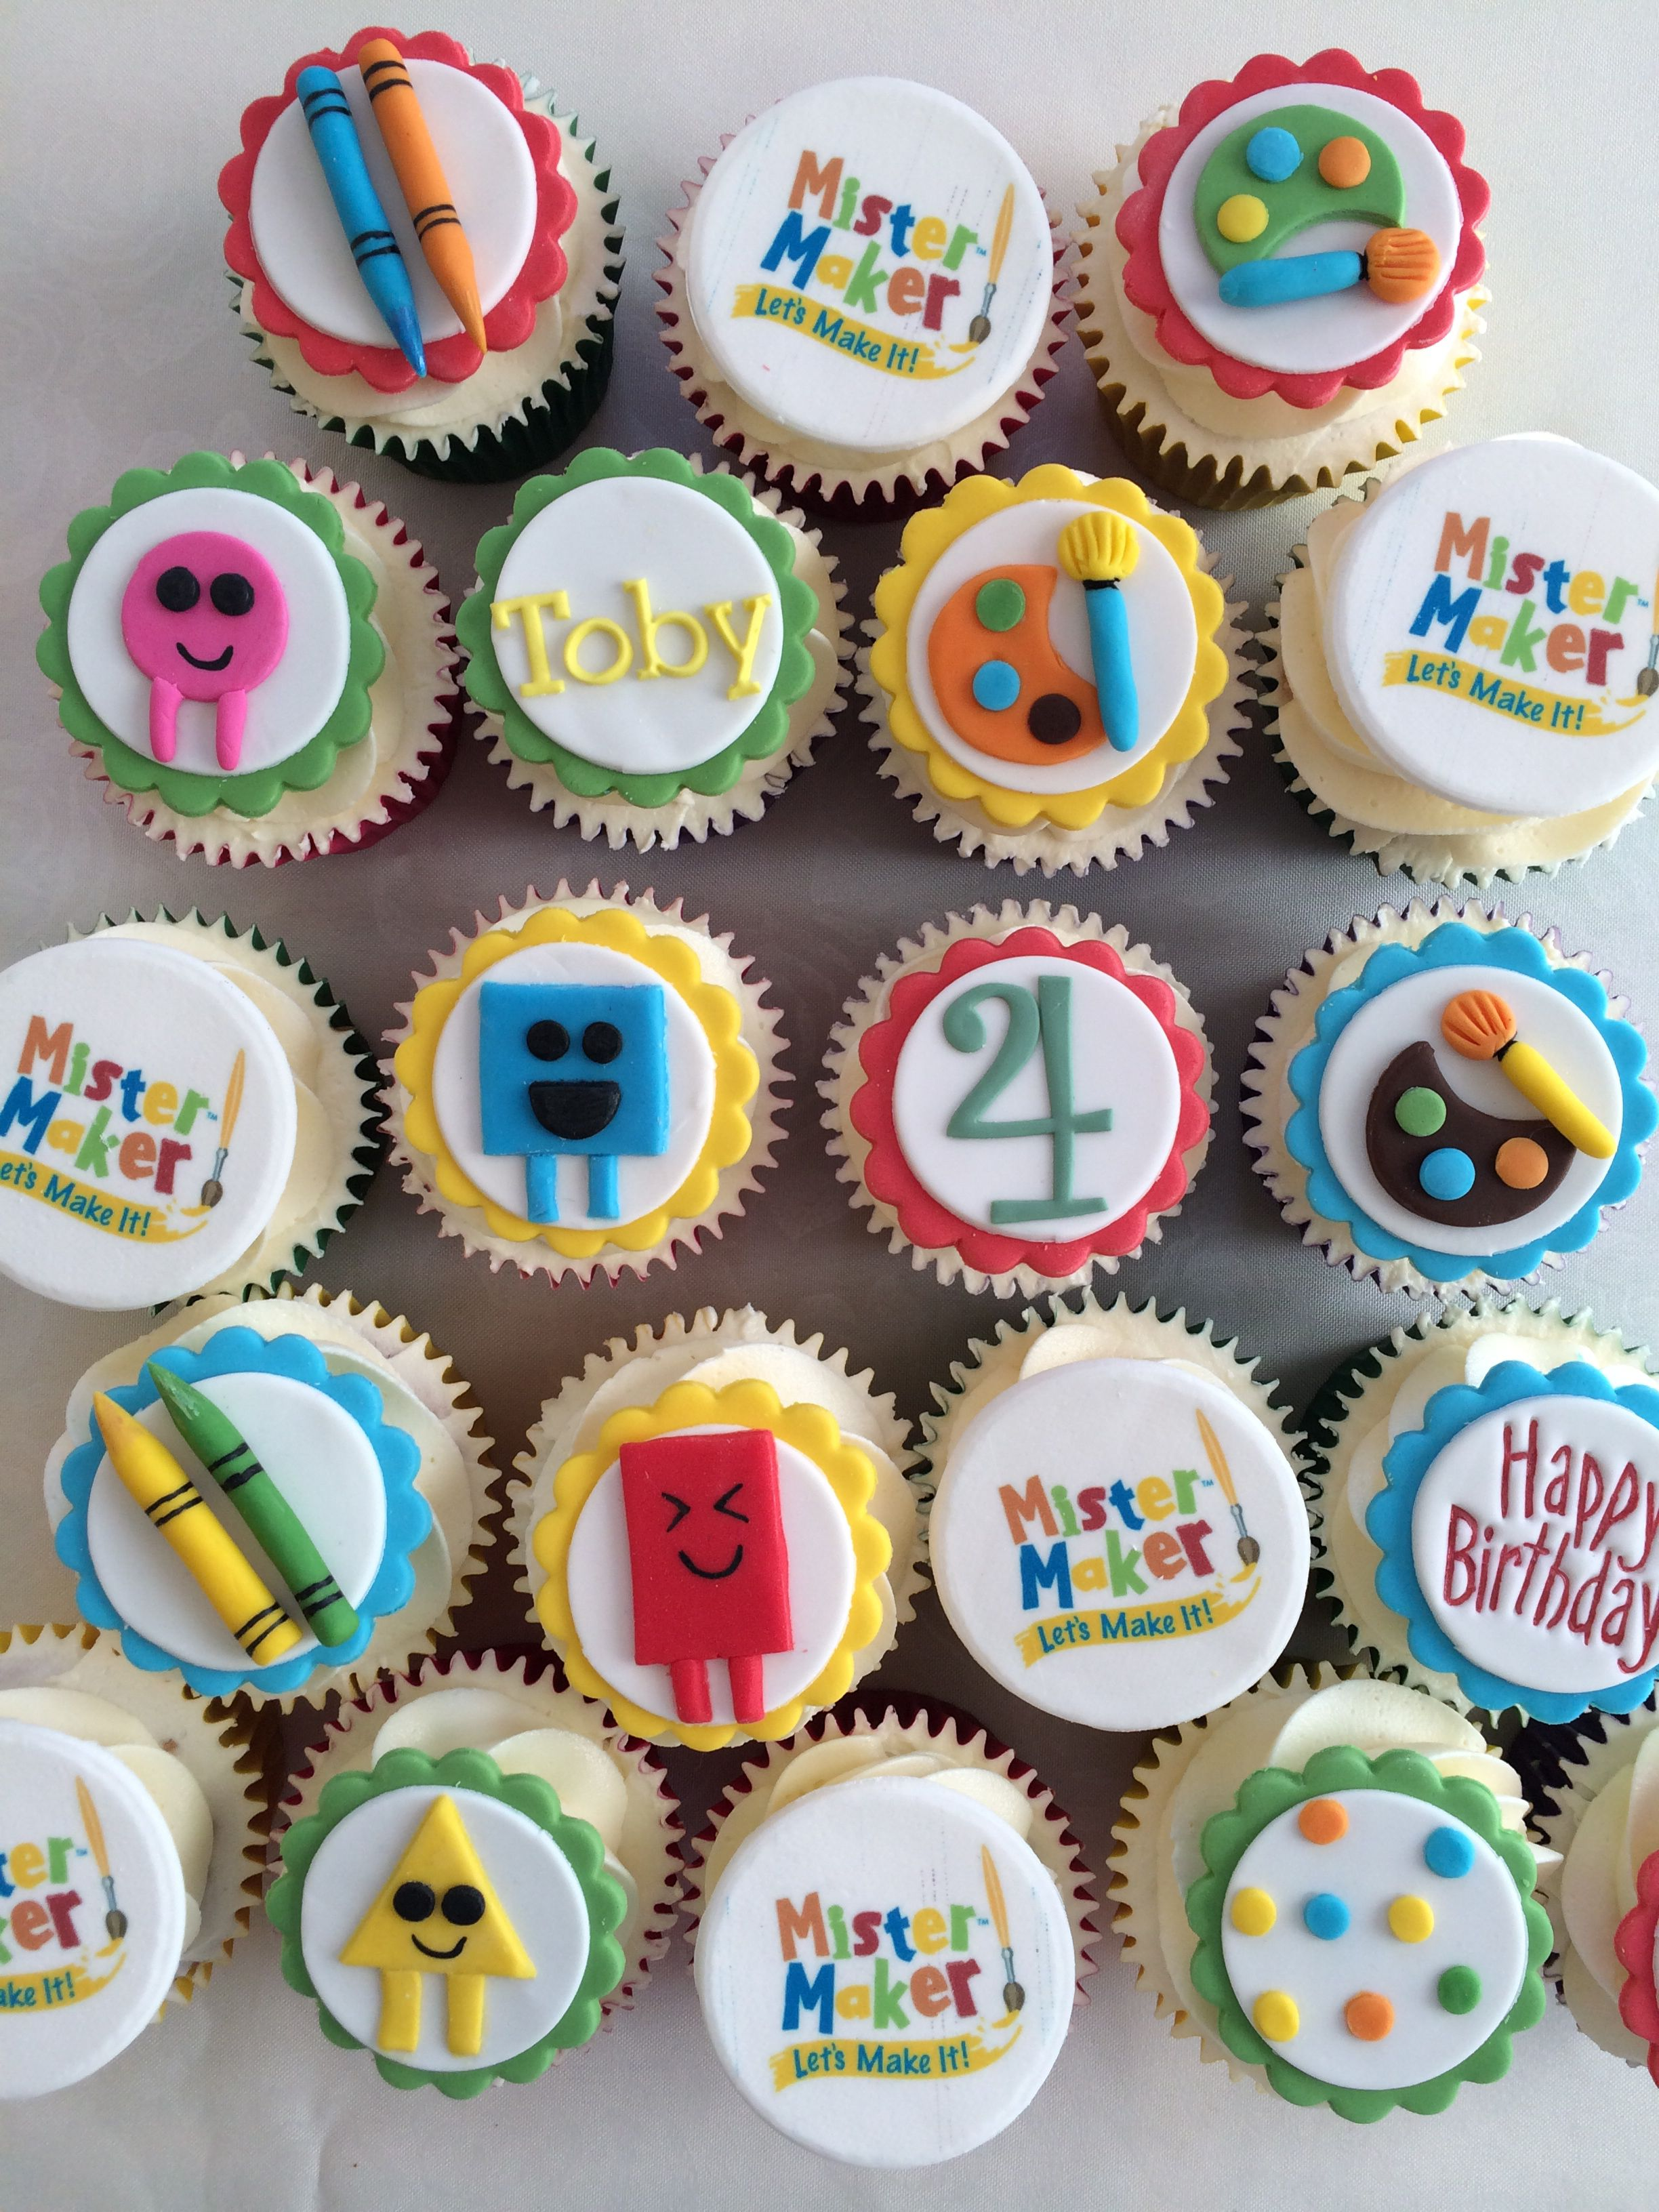 Pleasing Mister Maker Birthday Cupcakes 4Th Birthday Cakes Harry Personalised Birthday Cards Cominlily Jamesorg